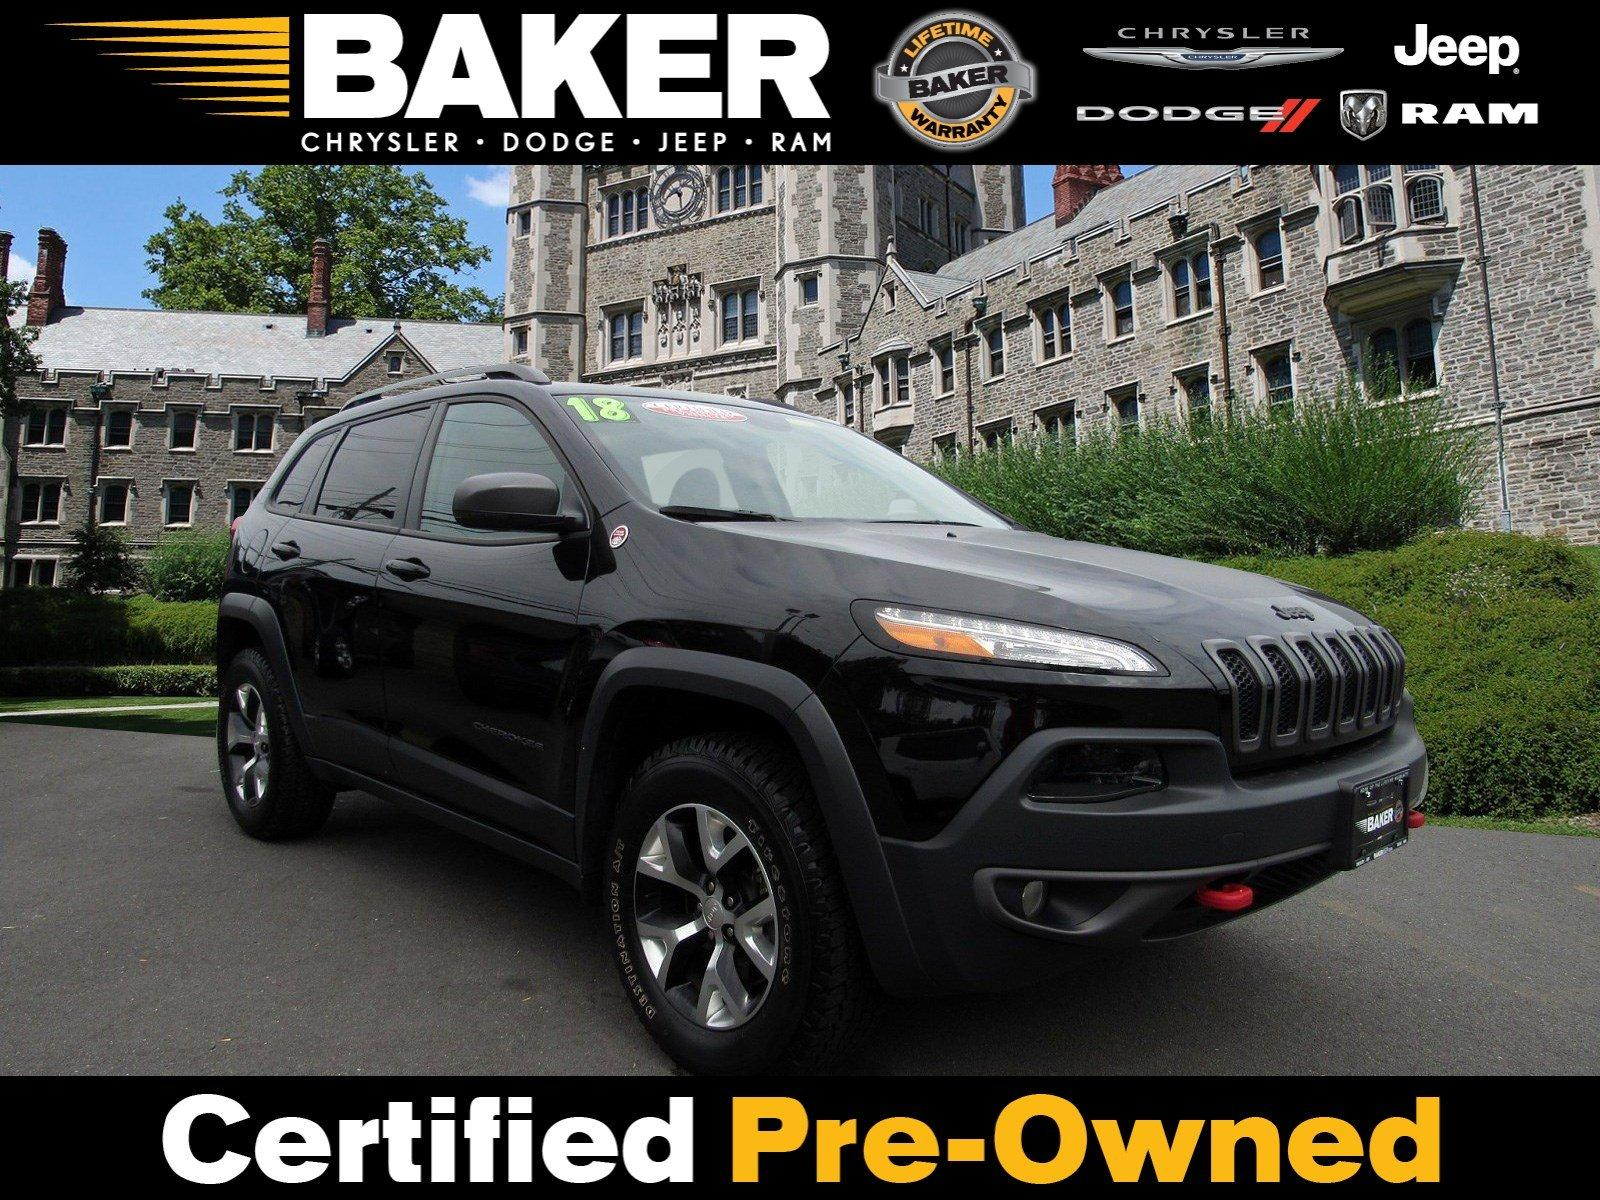 Used 2018 Jeep Cherokee Trailhawk for sale Sold at Victory Lotus in Princeton NJ 08540 1